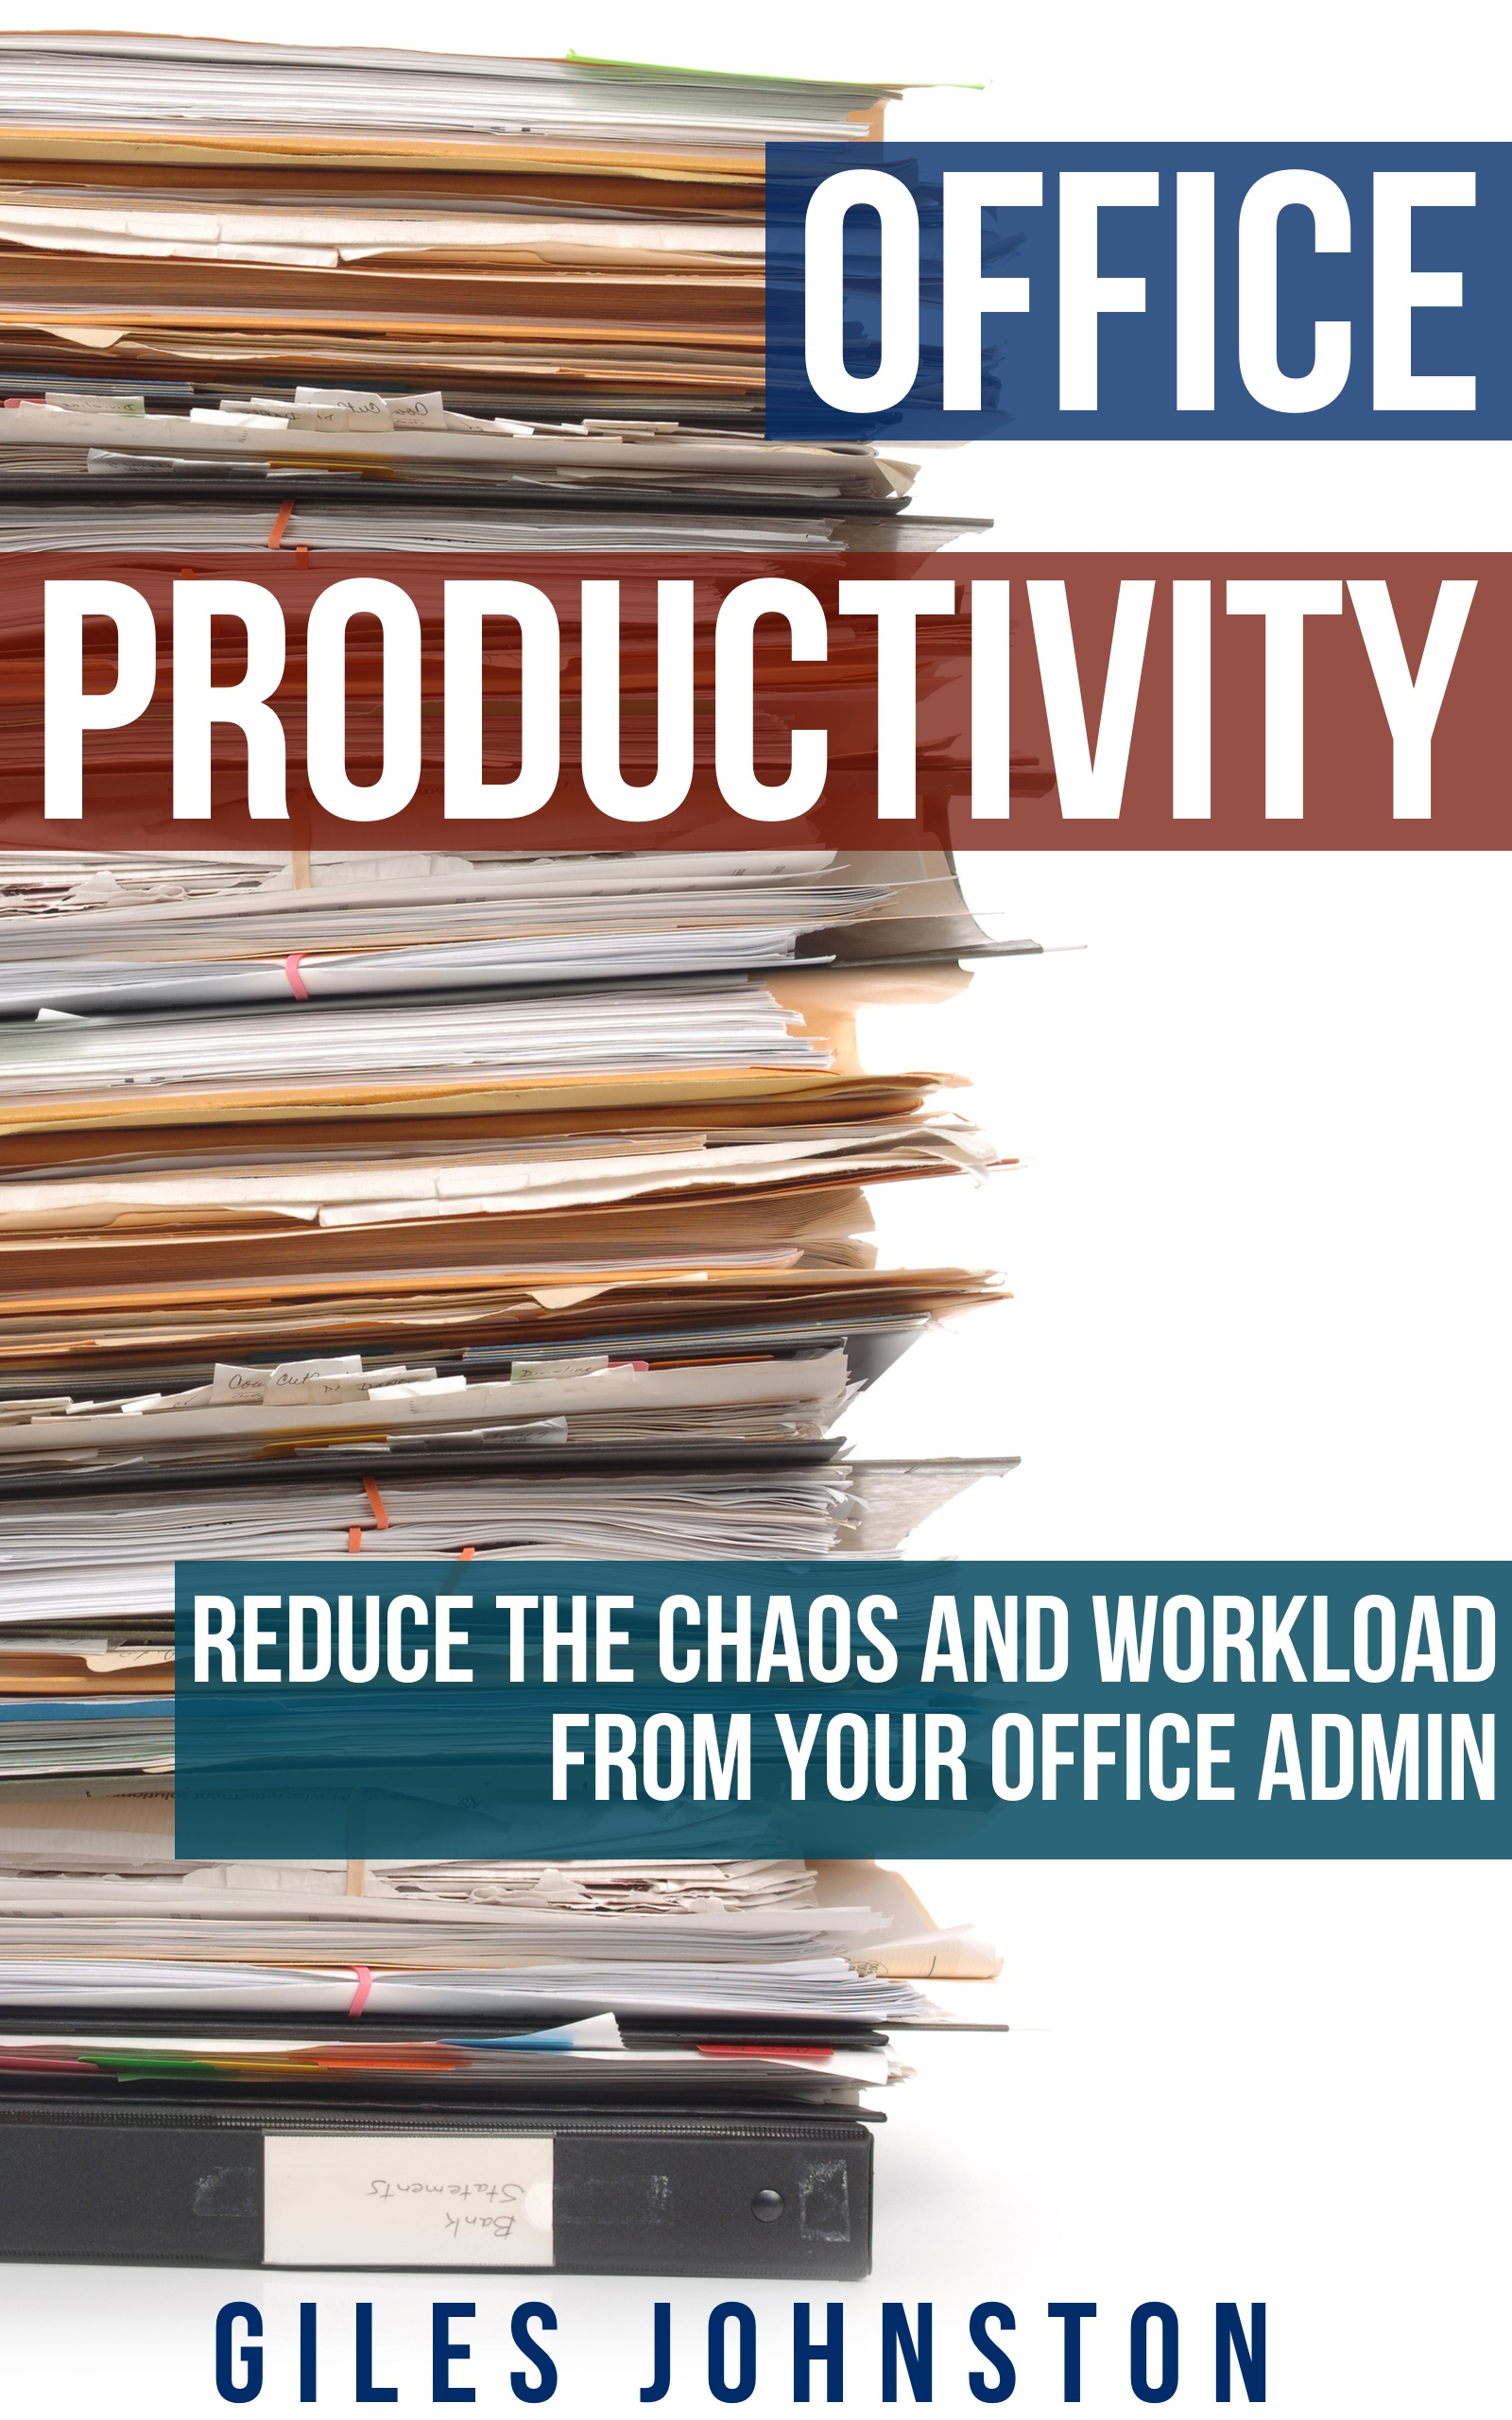 Office Productivity: Reduce the chaos and workload from your office admin